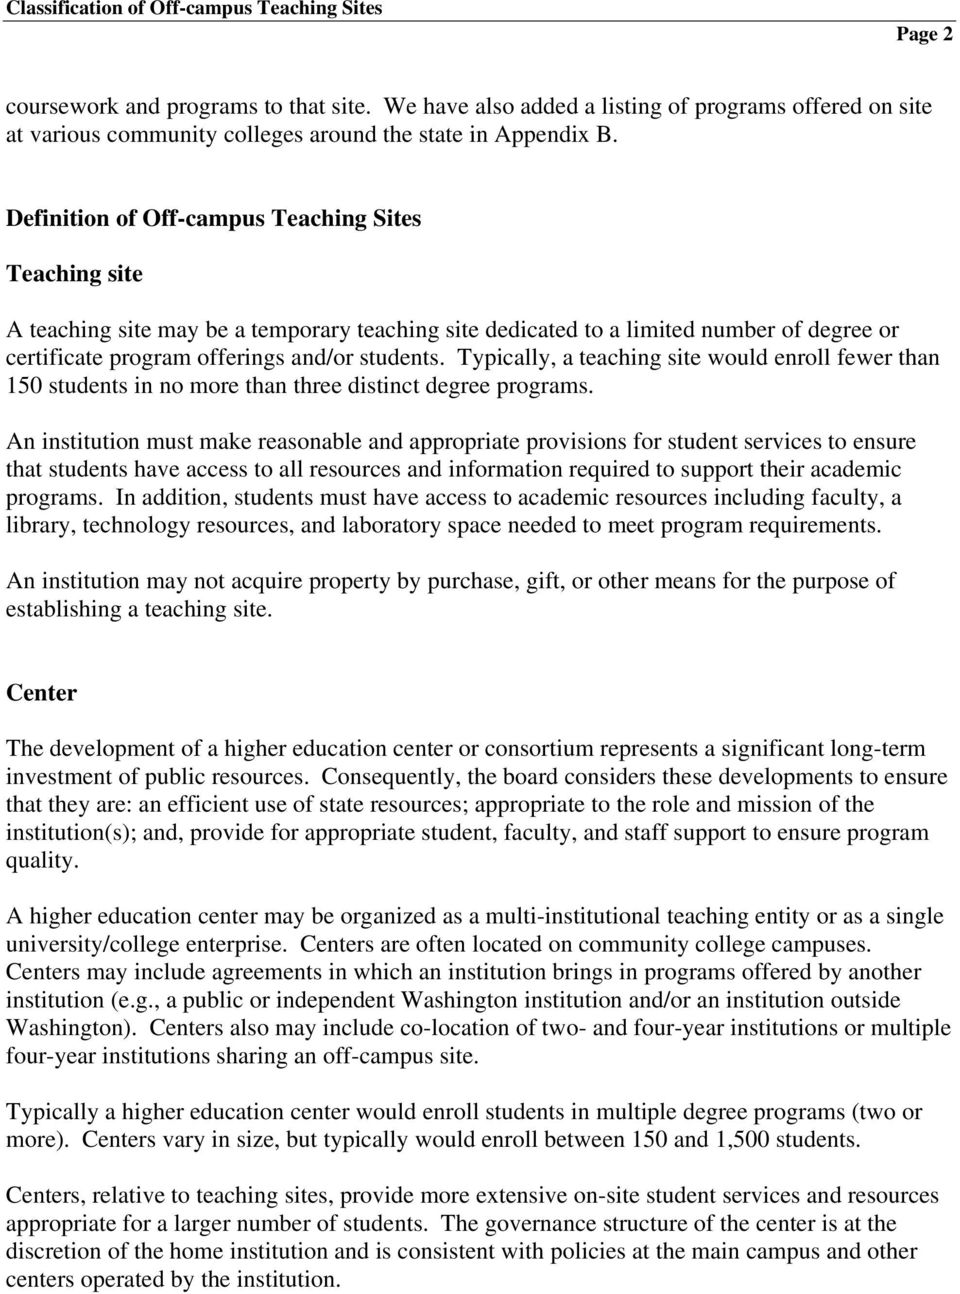 Definition of Off-campus Teaching Sites Teaching site A teaching site may be a temporary teaching site dedicated to a limited number of degree or certificate program offerings and/or students.